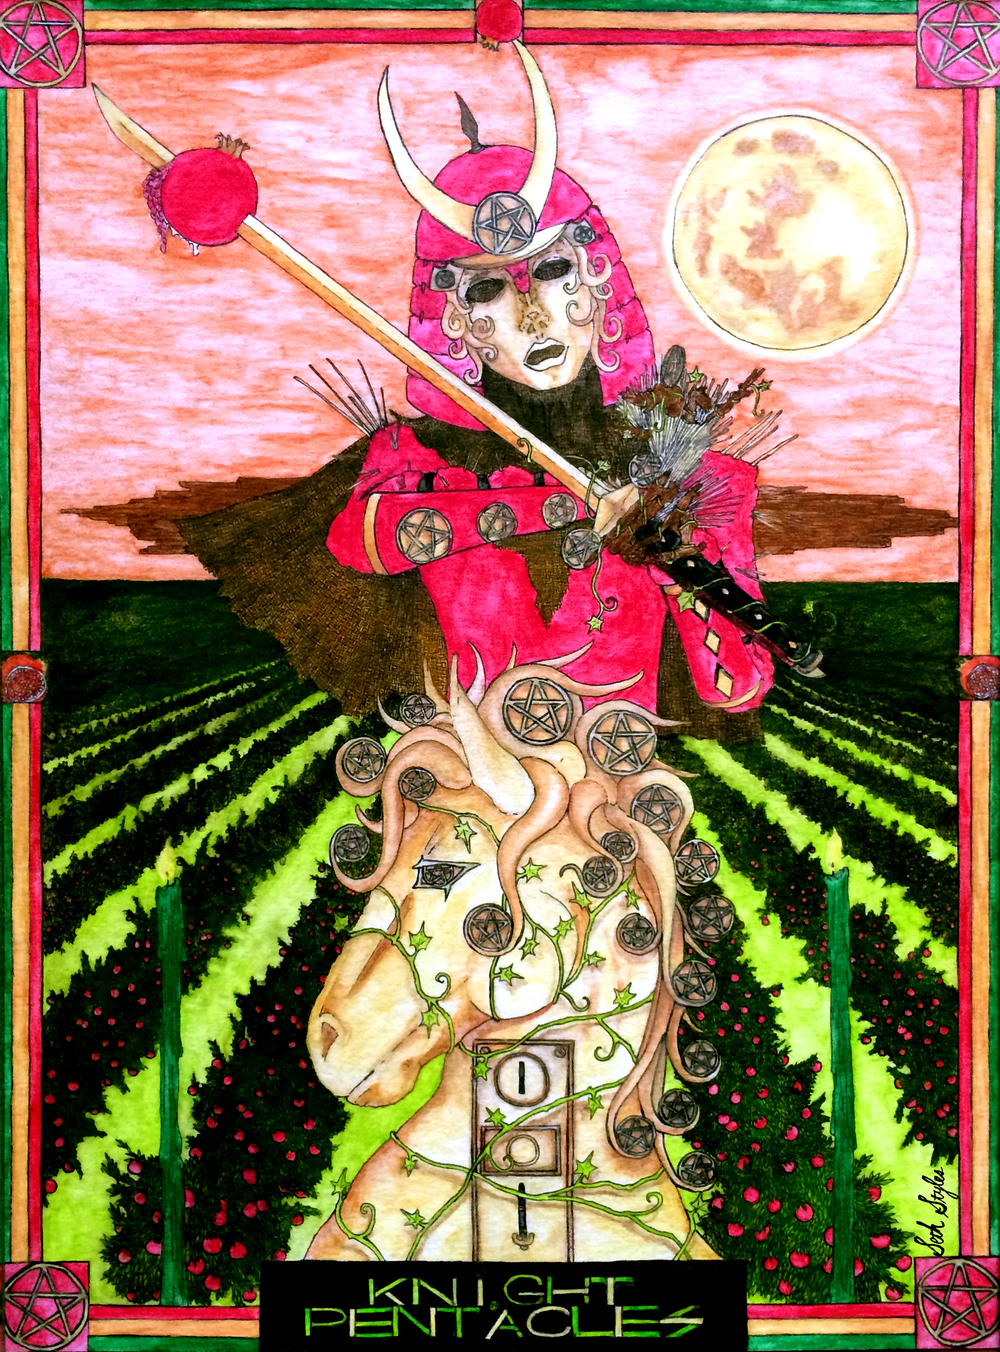 knight-of-pentacles-tarot-occult-seth-styles-minor-arcana-samurai-scarecrow-money-success-abundance